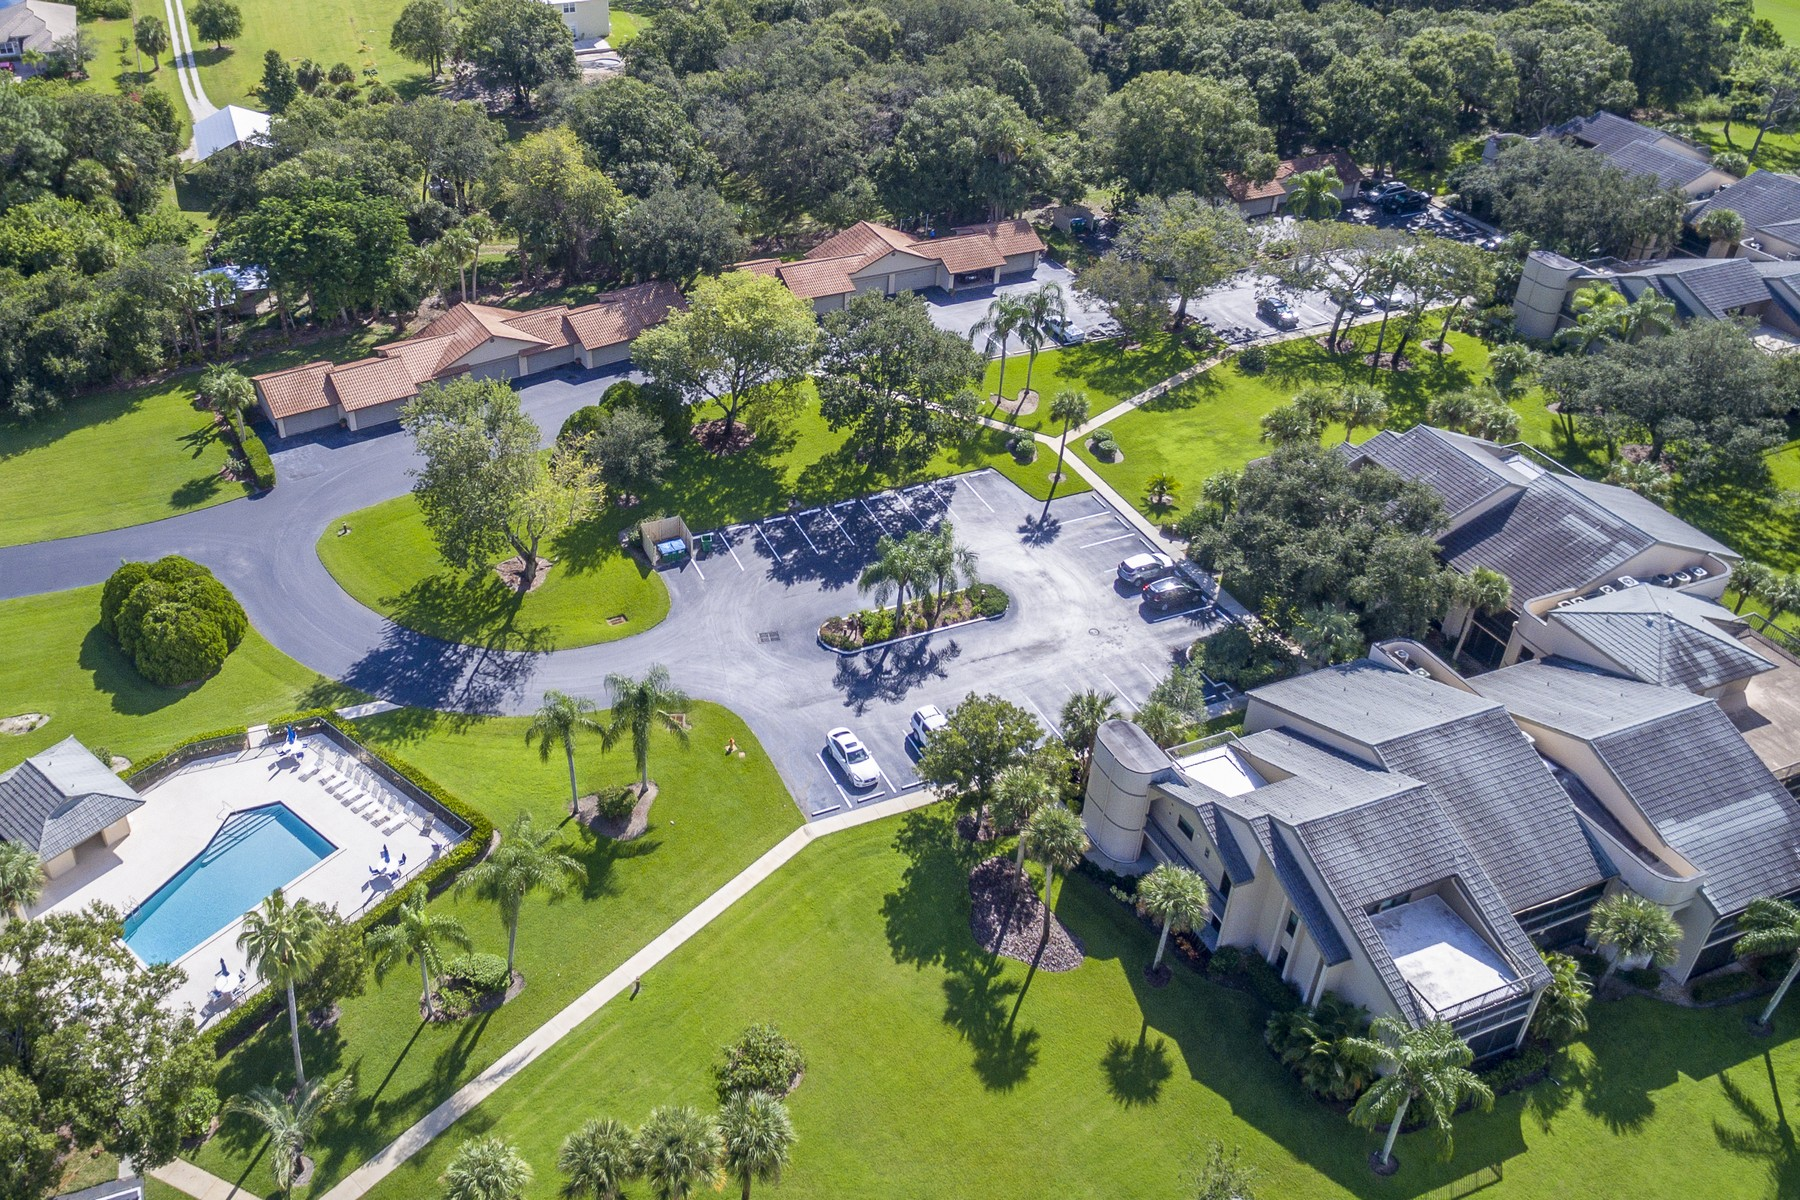 Condominium for Sale at Spacious First Floor Condo With Amazing Golf Course Views 9450 Meadowood Drive #102 Fort Pierce, Florida 34951 United States